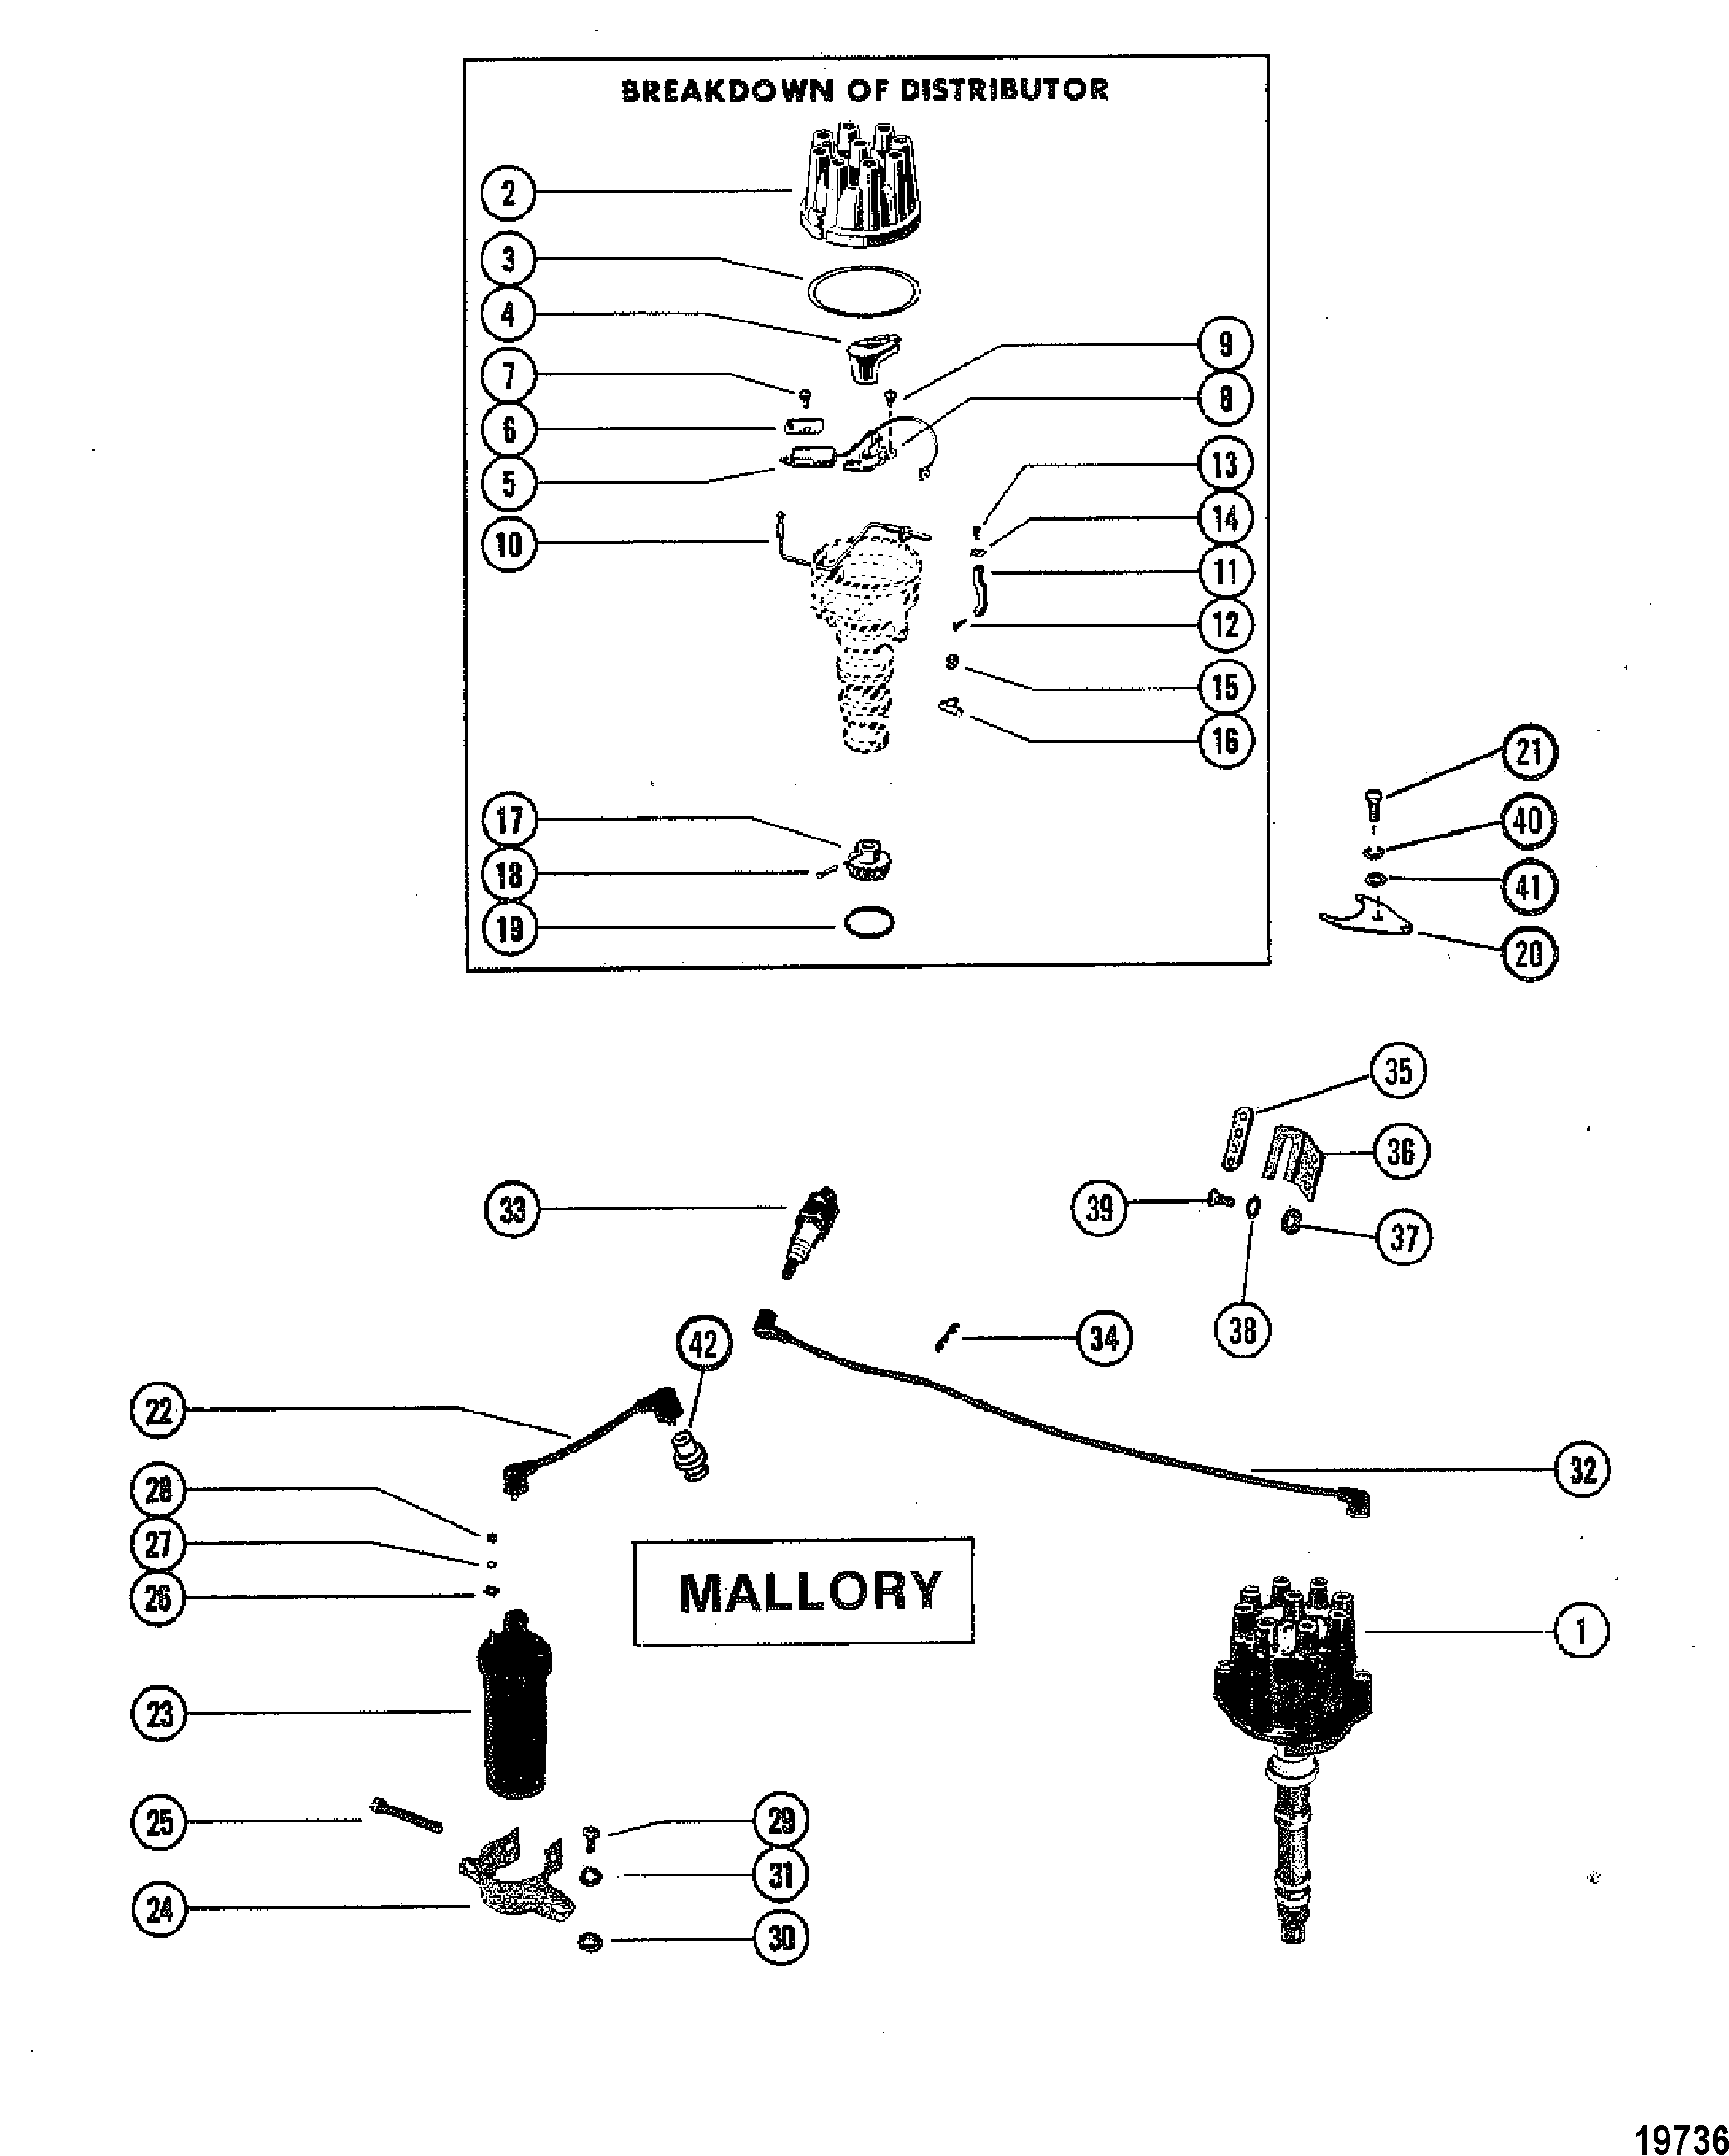 Mallory Hyfire Wiring Diagram For Cj7 Mallory HyFire Wiring Diagram For CJ7 Mallory  Hyfire Wiring Diagram